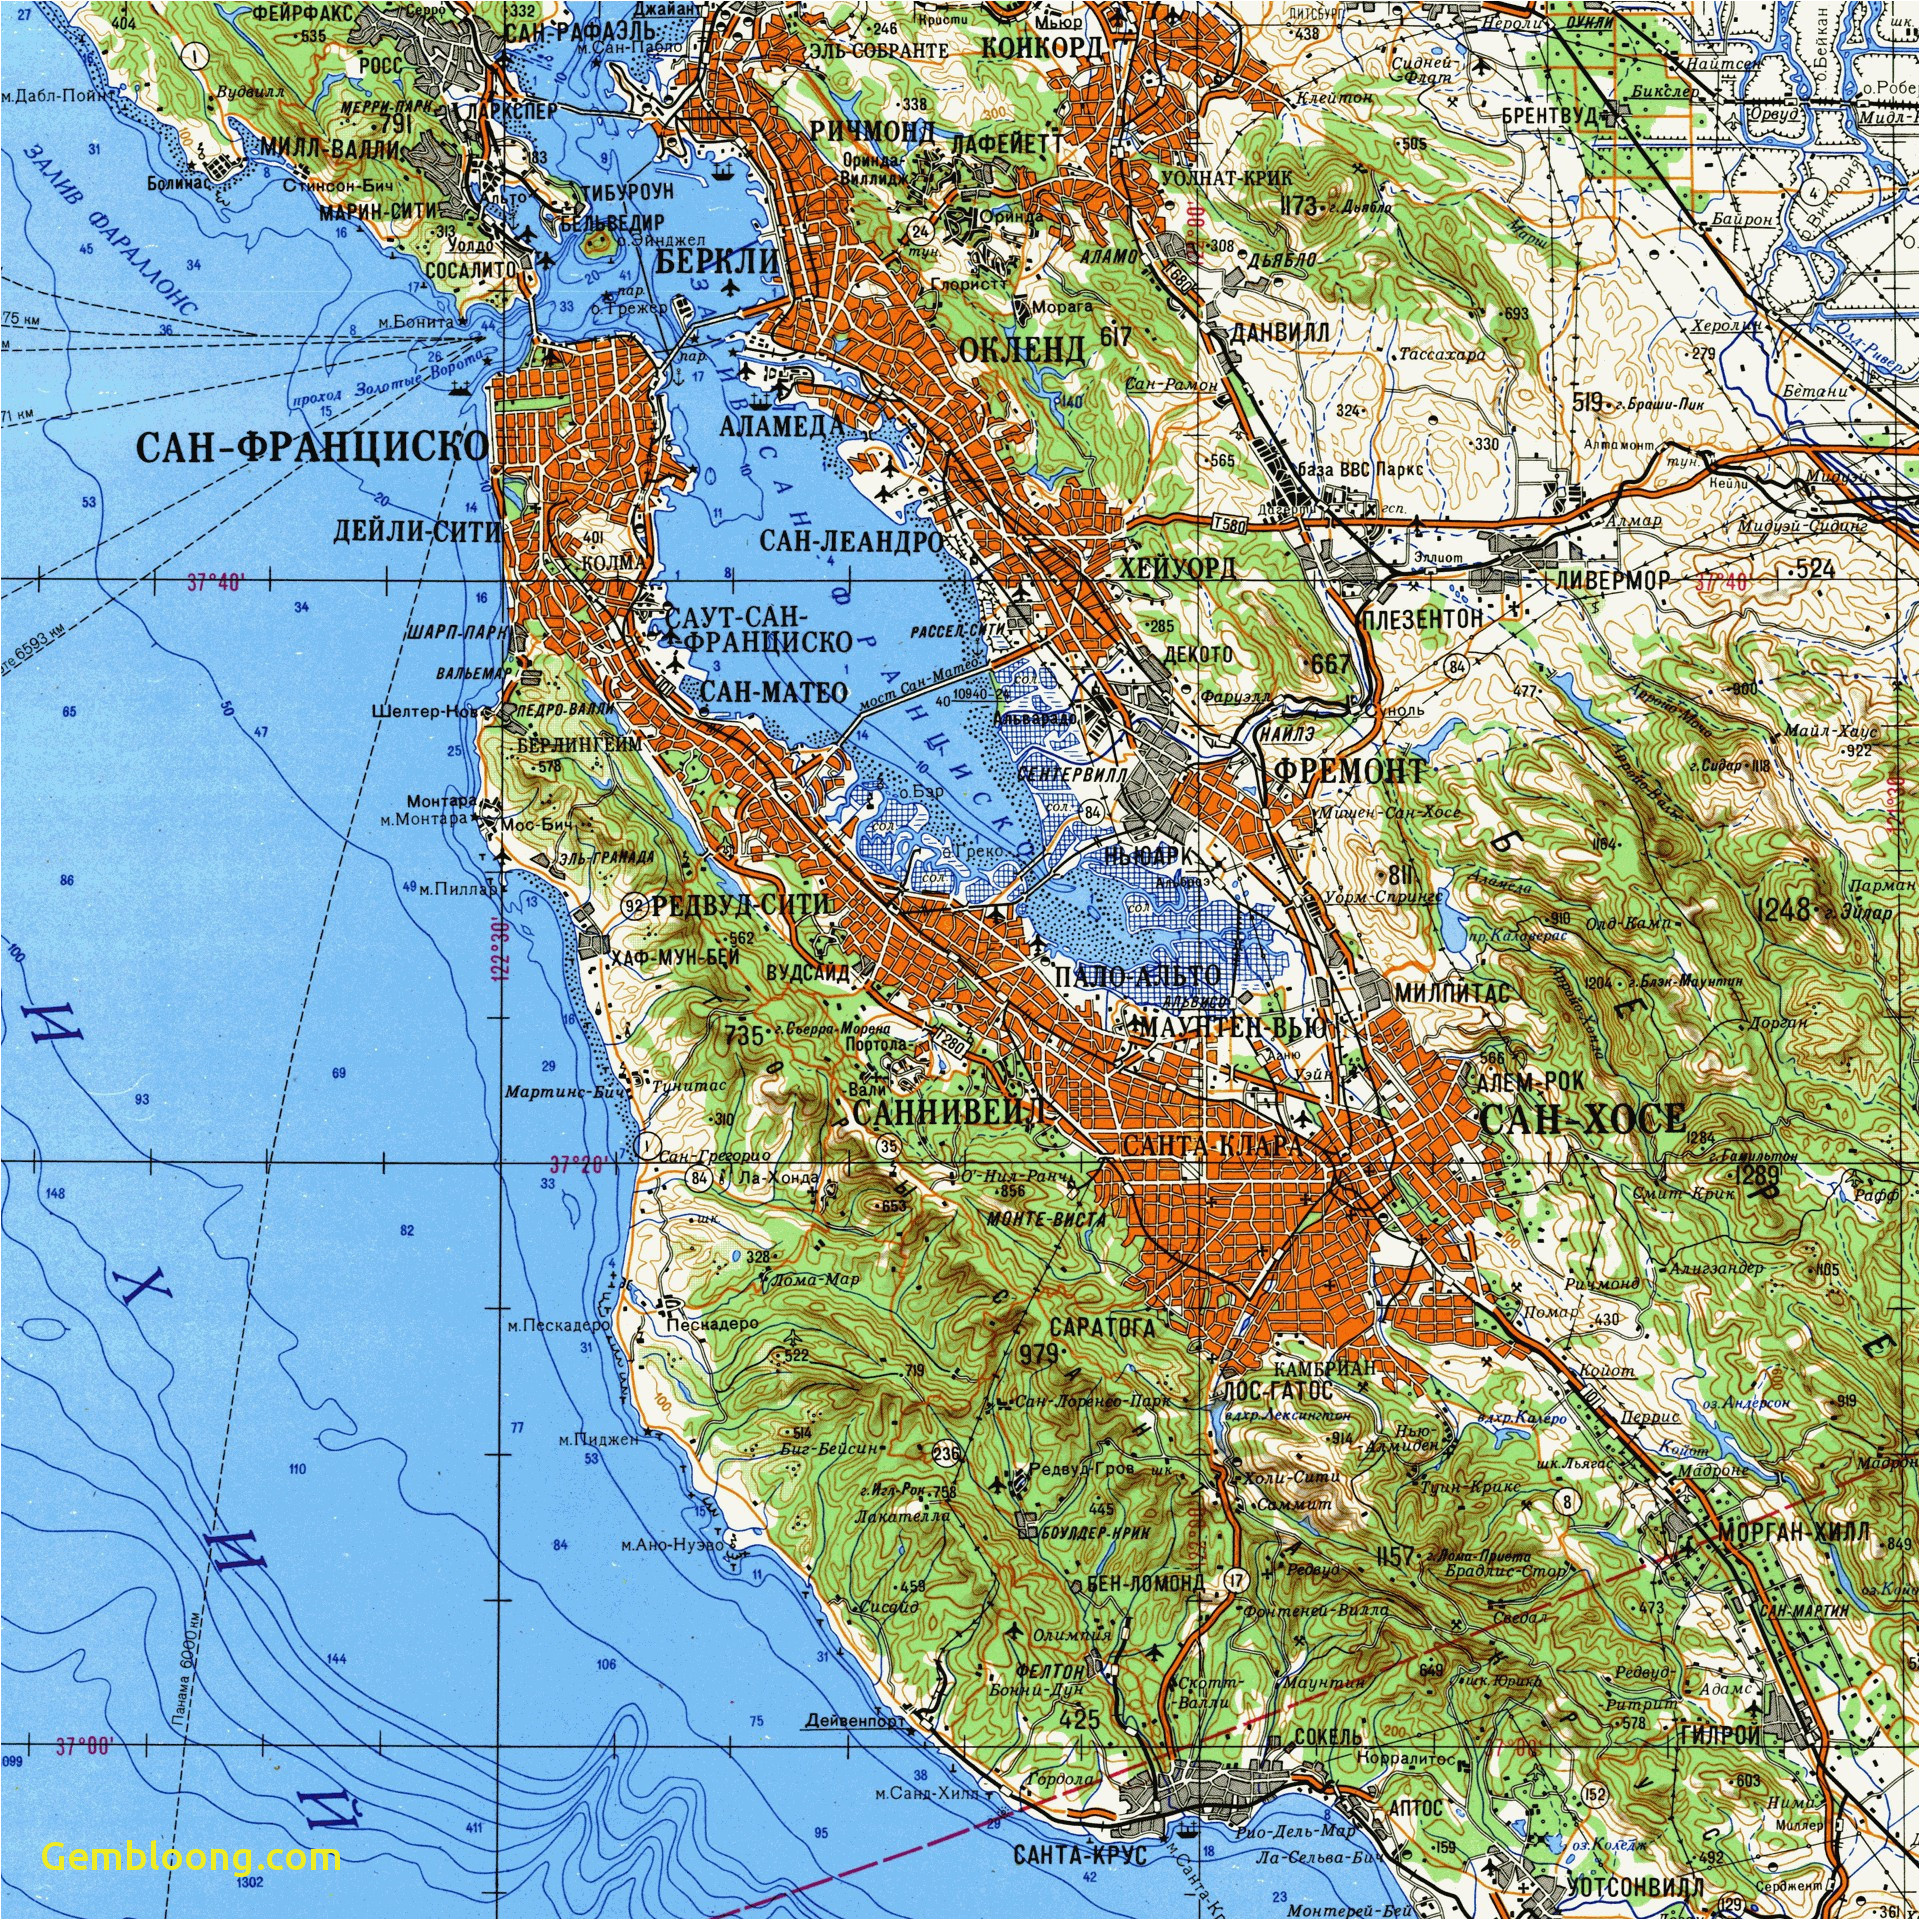 Usgs topo Maps California Us Elevation Map Google Best soviet ... California Elevation Map on